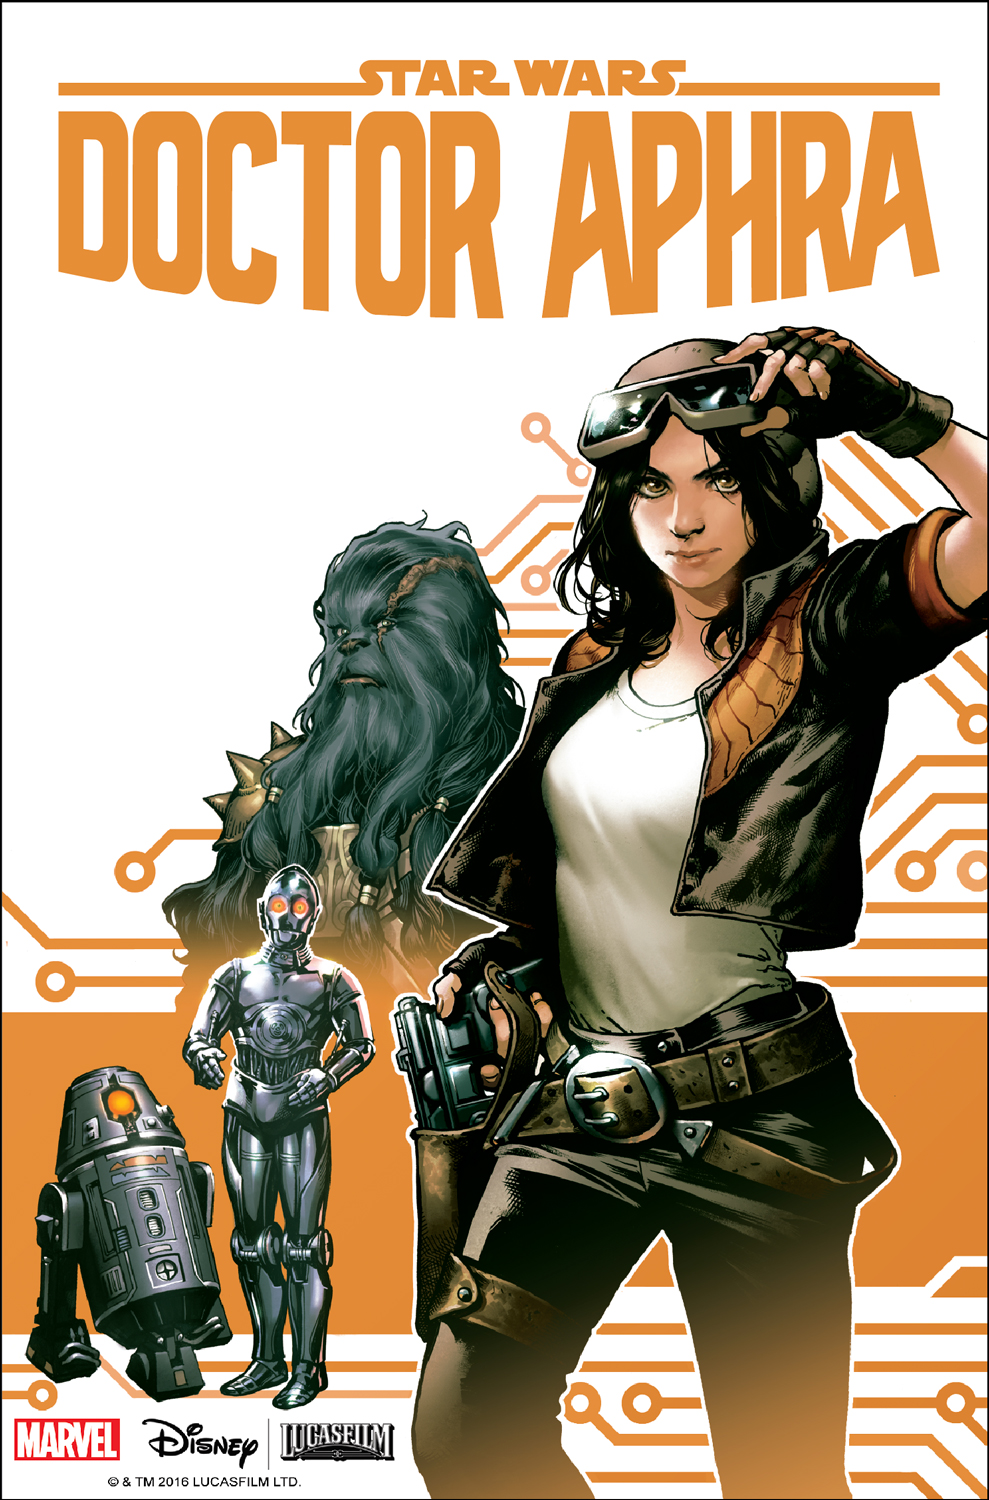 STAR WARS: DOCTOR APHRA #1 – New Ongoing Series Coming This December!